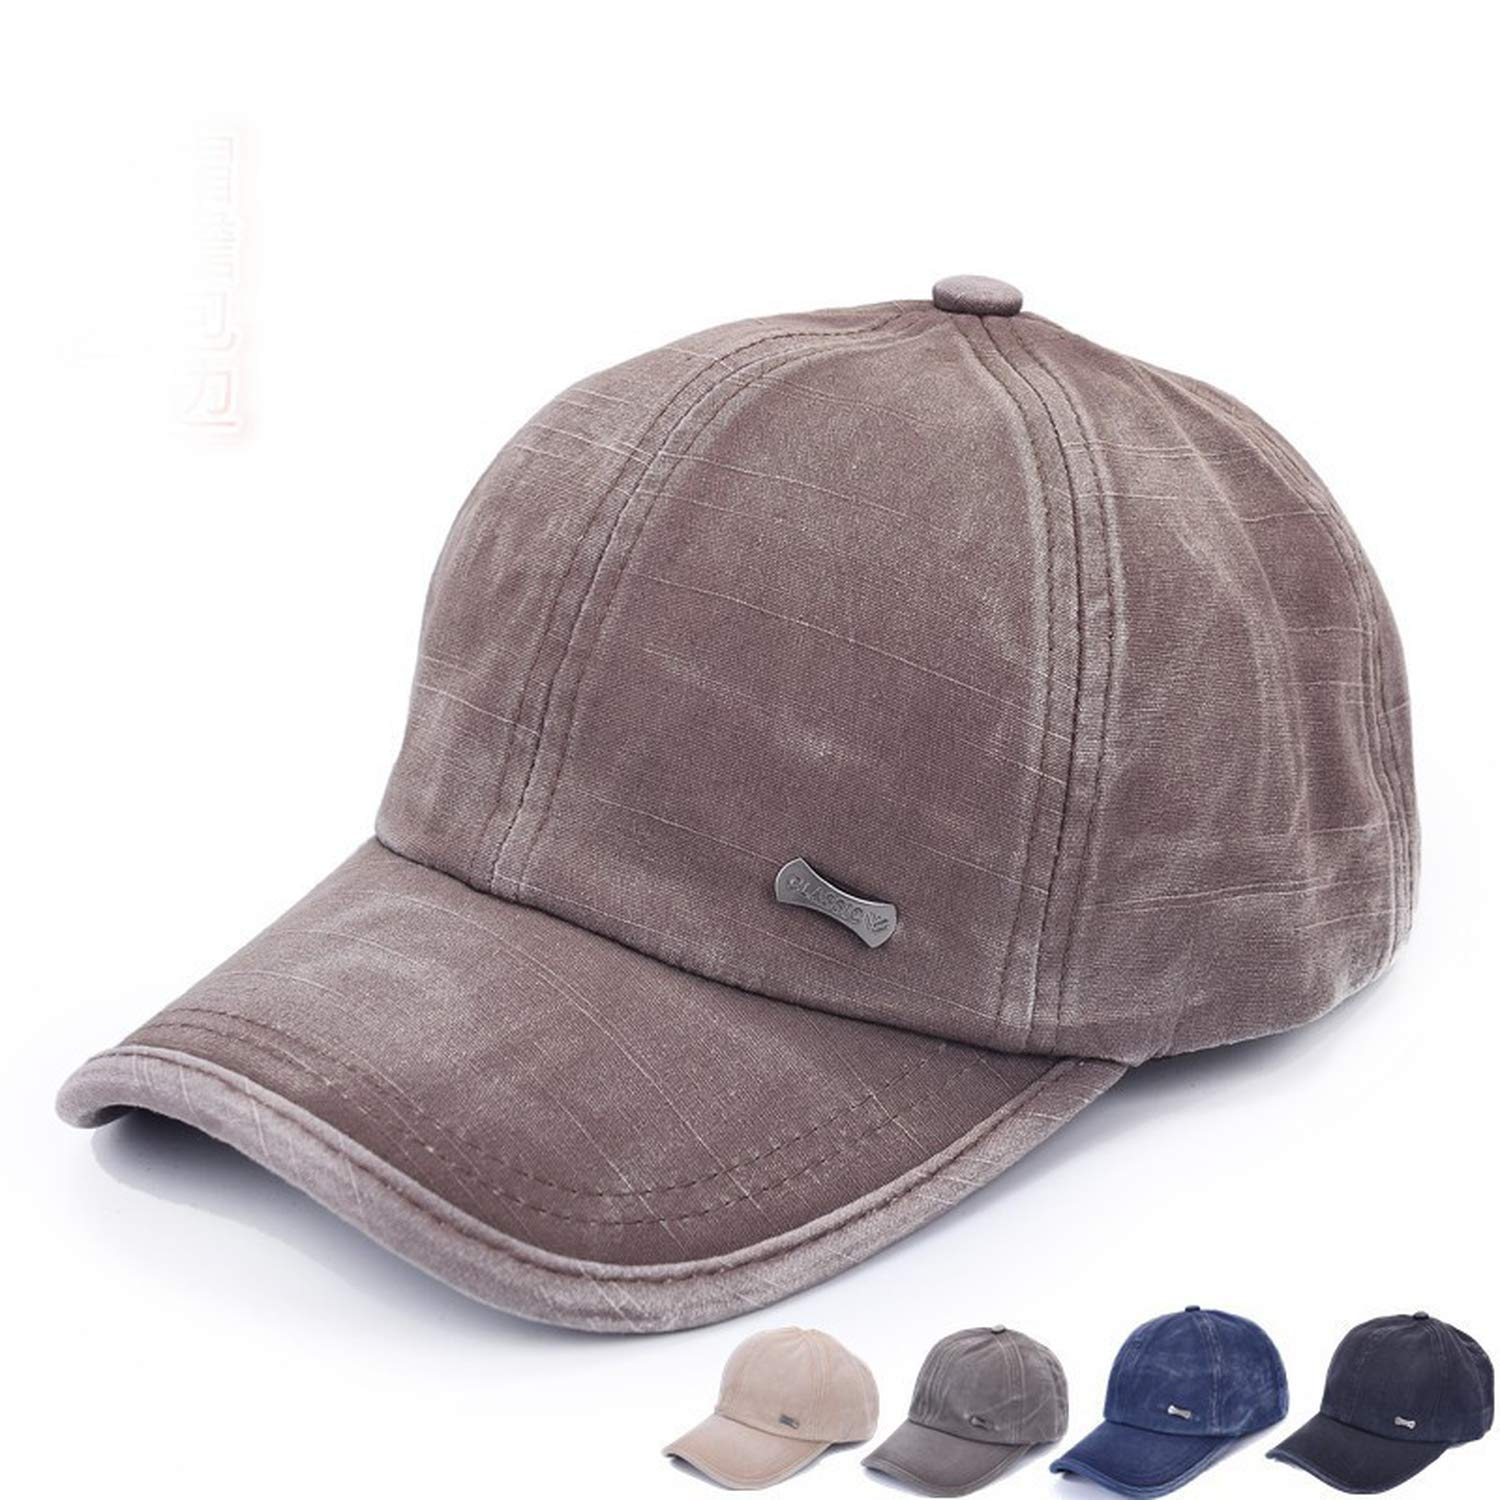 Summer Style Cadet Baseball Sport Cap Men Women Classic Adjustable Army Plain Hat New,as The Picture show4